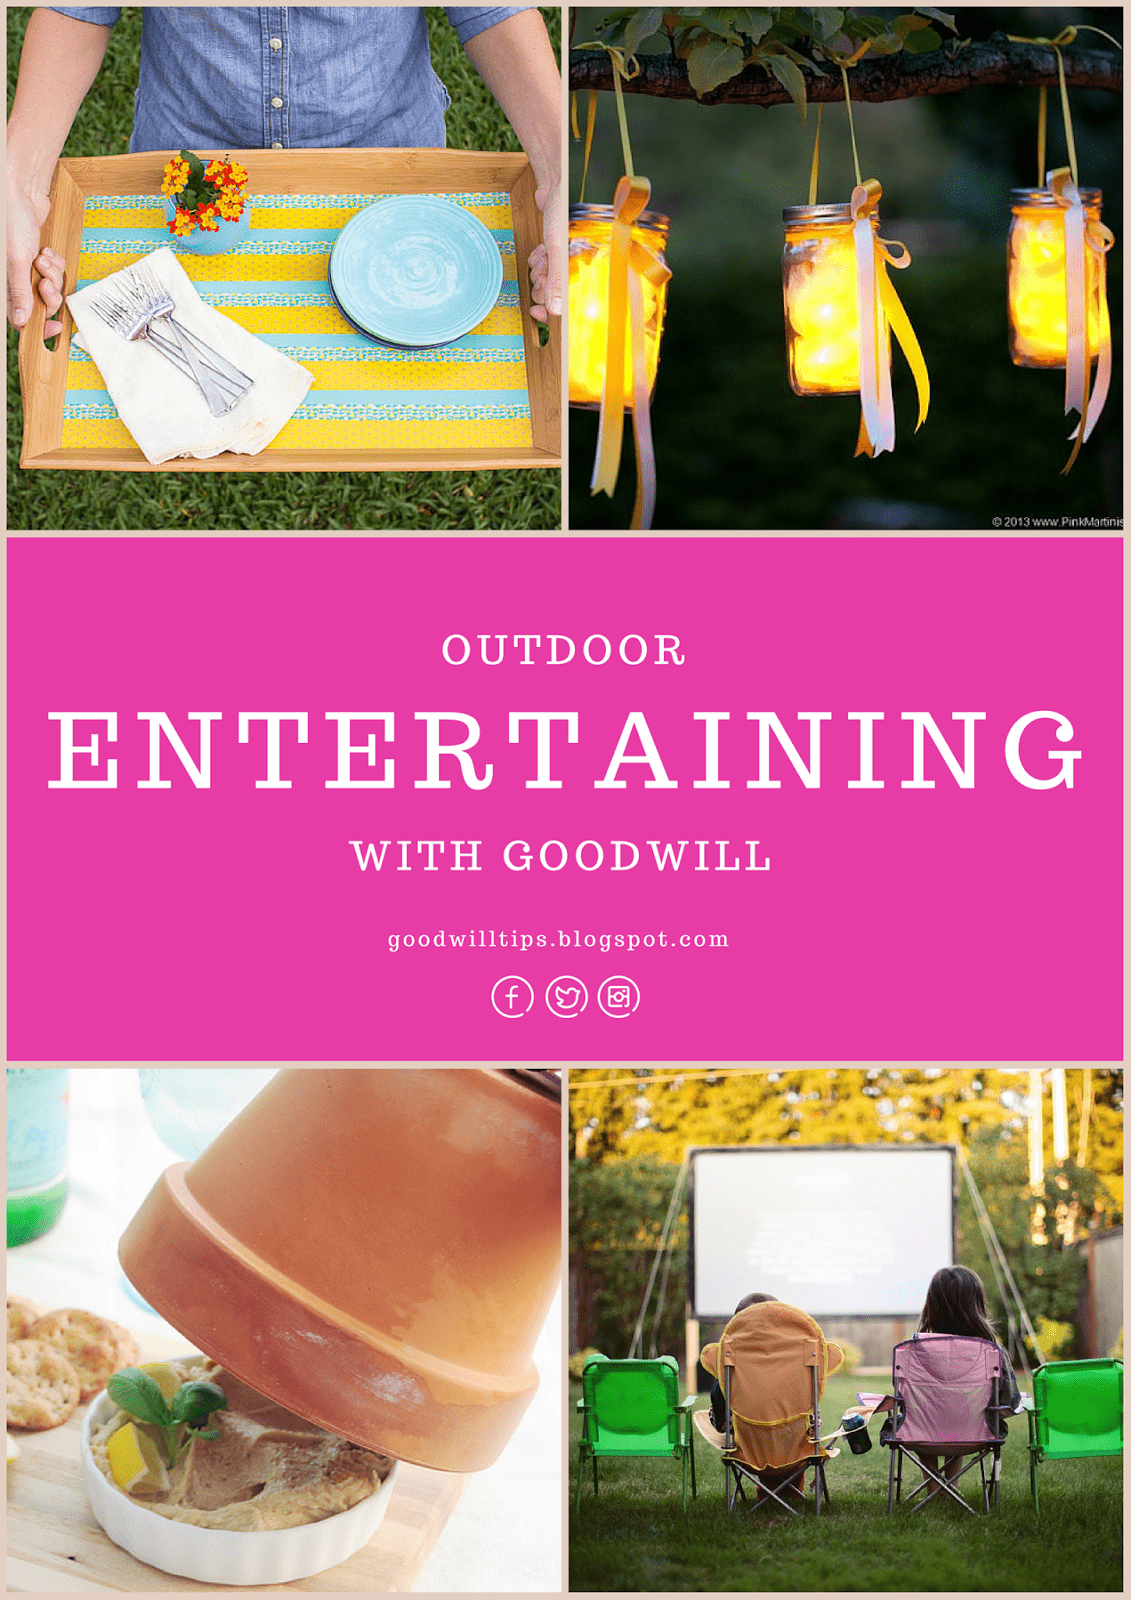 Beautiful Ideas for Outdoor Entertaining With Goodwill